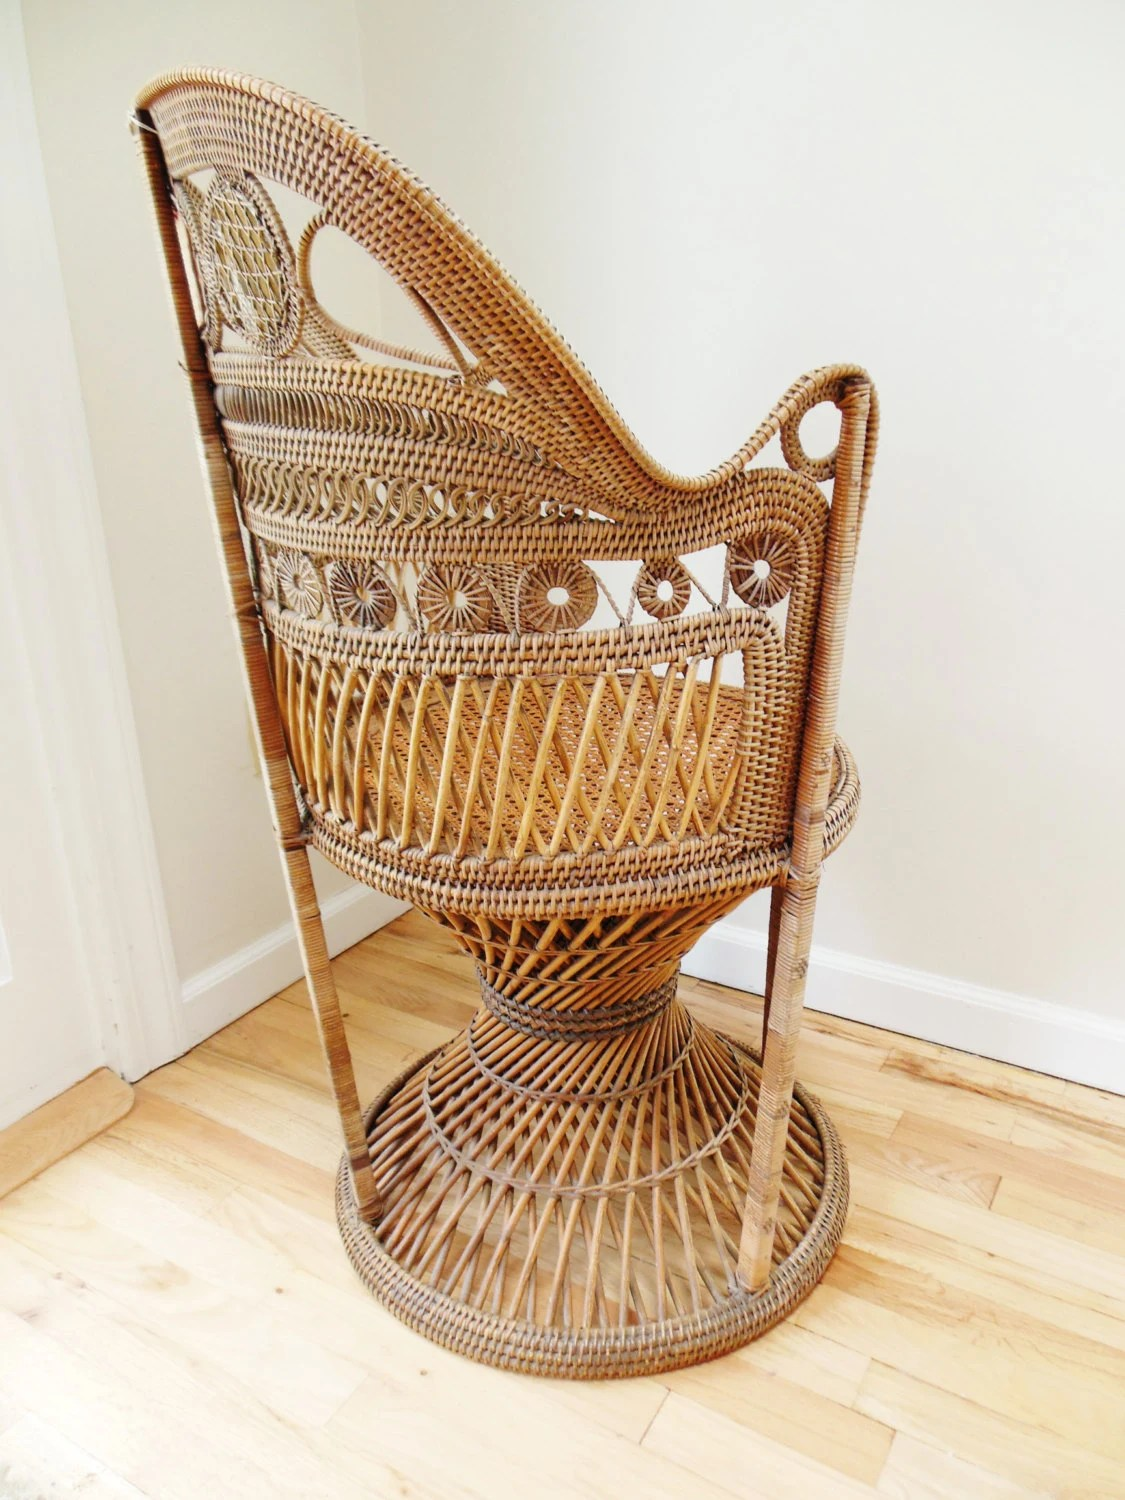 Vintage Rattan Chairs Wicker Chair Antique Ornate